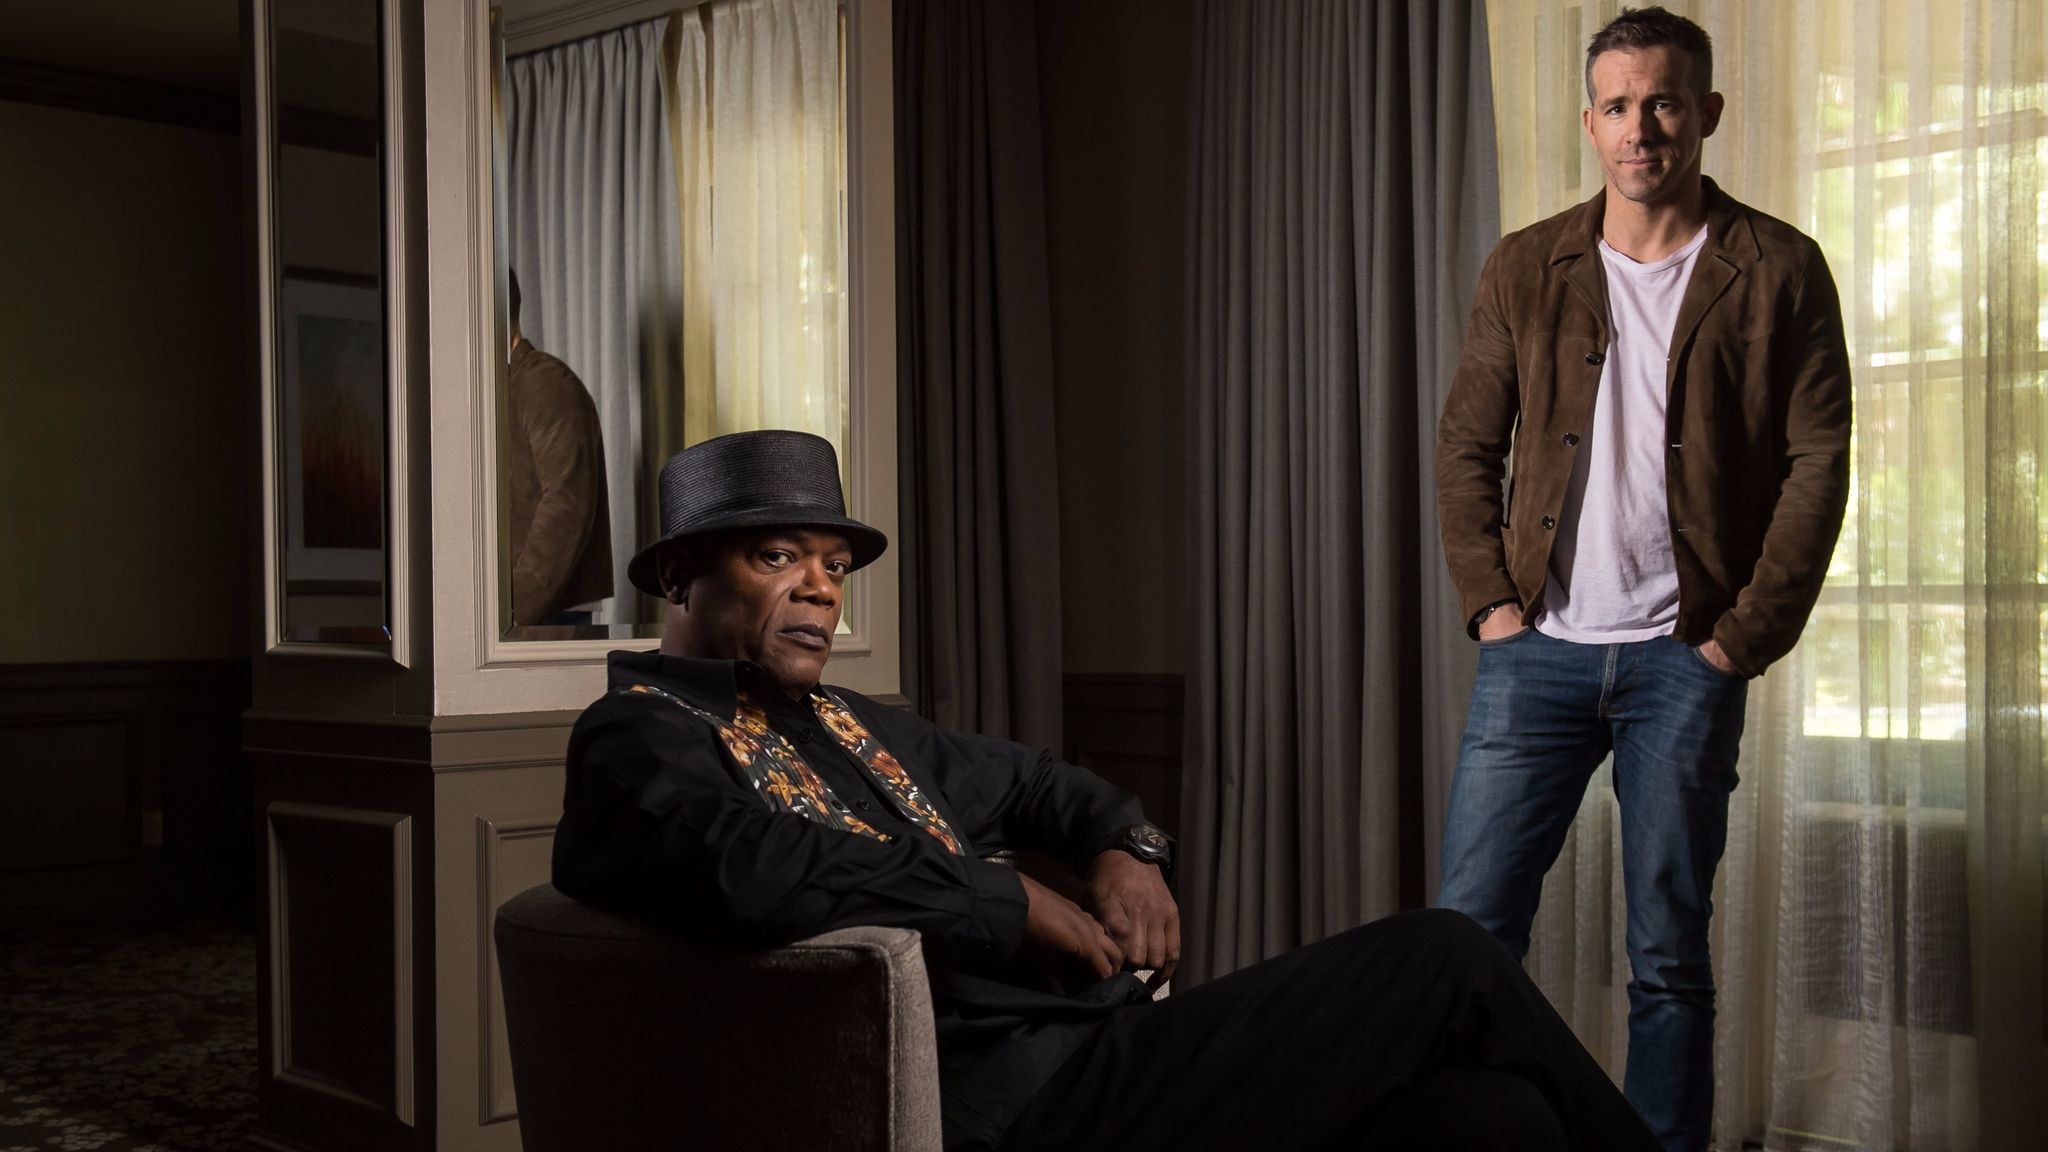 Samuel L. Jackson and Ryan Reynolds